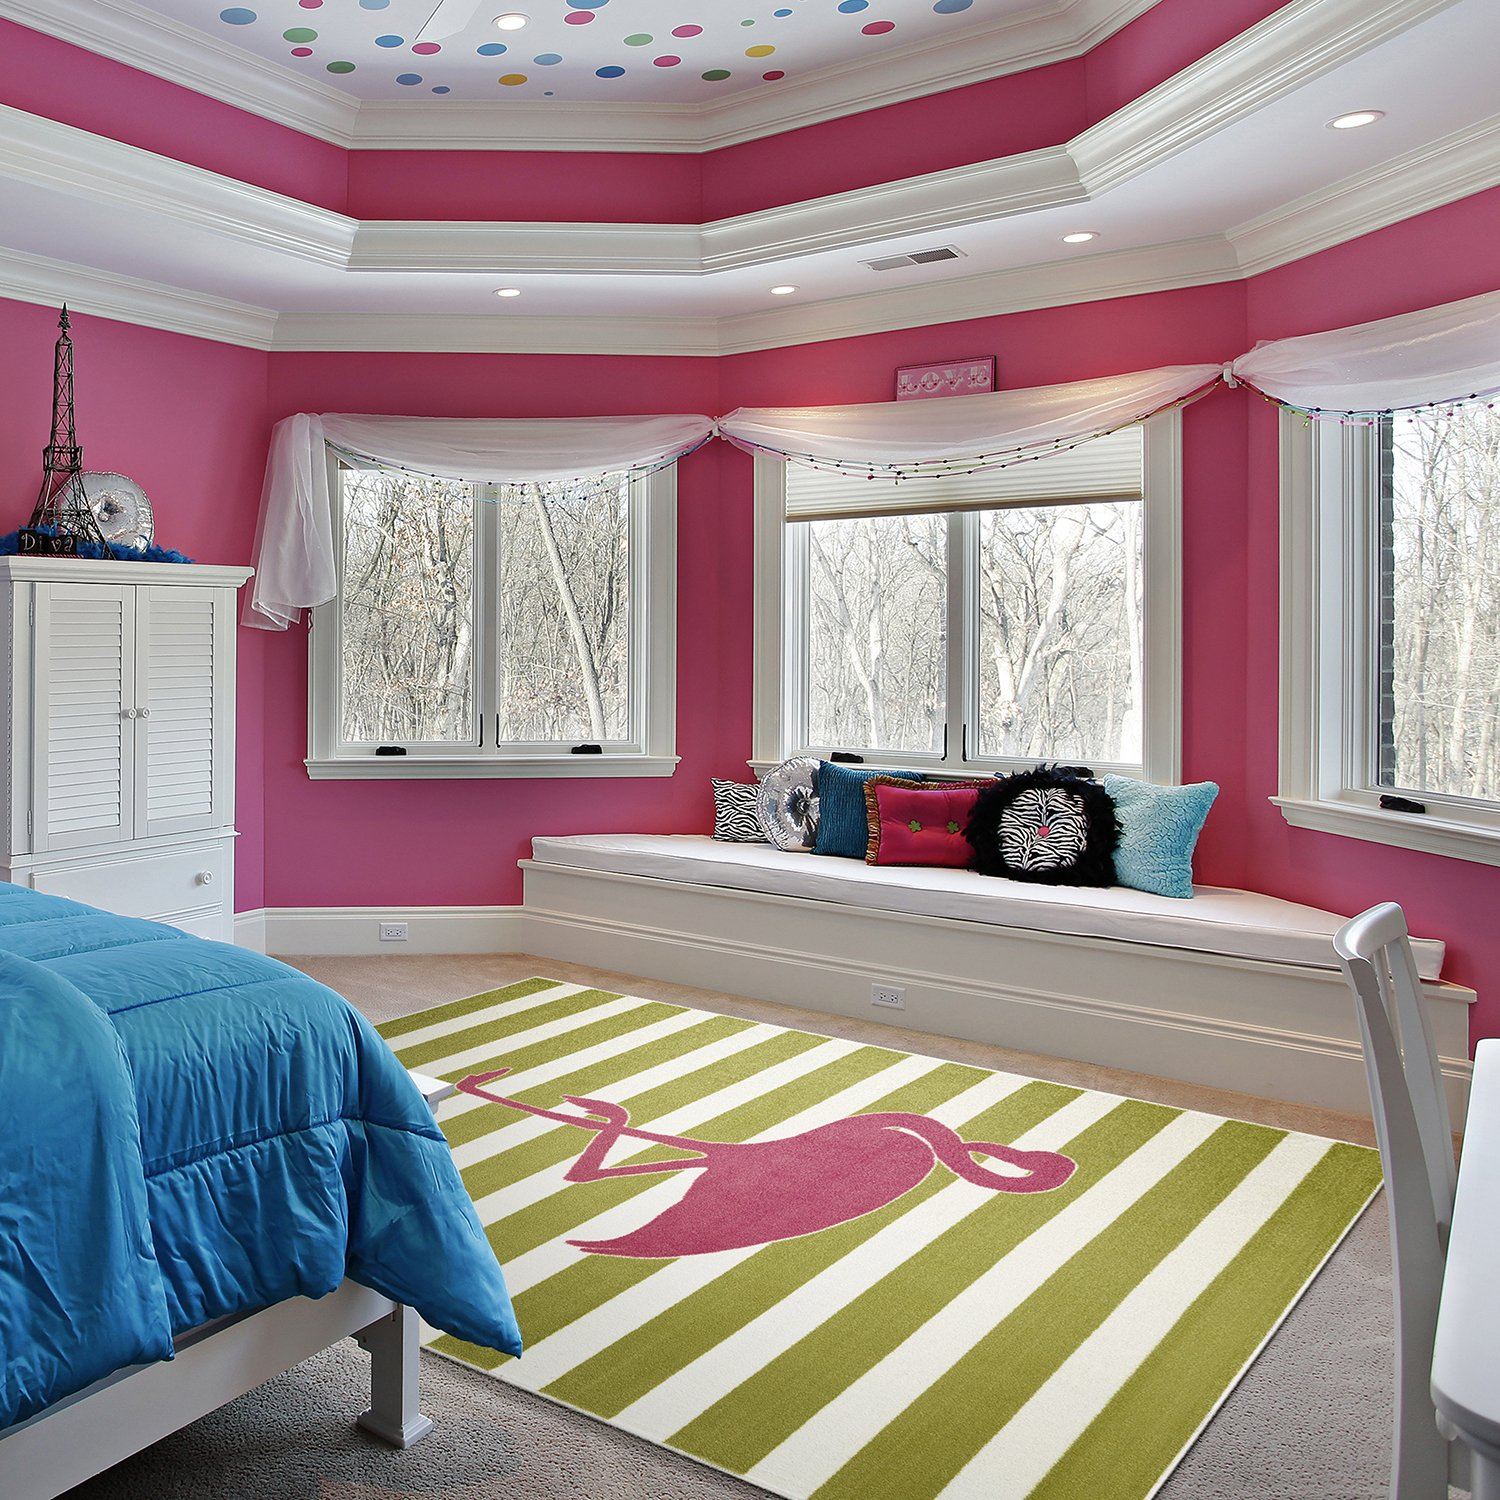 Mohawk Home Aurora Fancy Flamingo Striped Printed Contemporary Kids Area Rug,5'x8',Pink